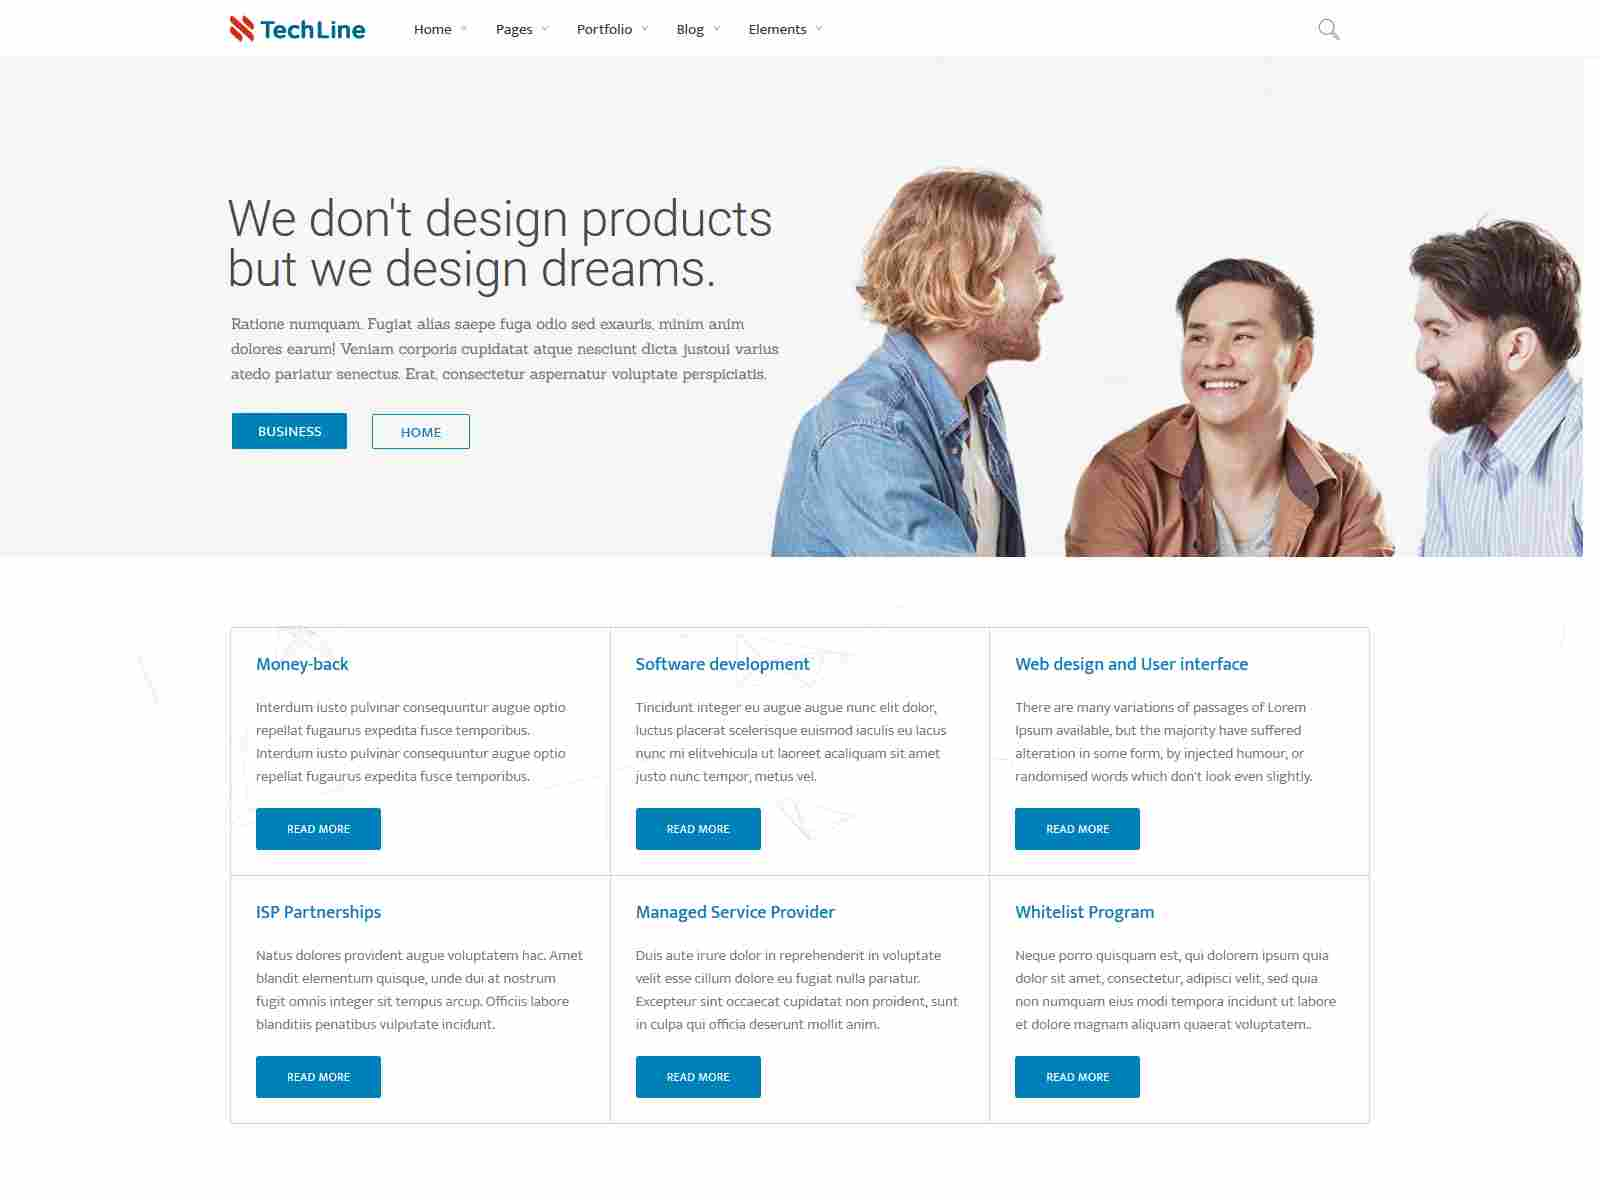 TechLine - Web services businesses and startups Drupal 8.8 Theme